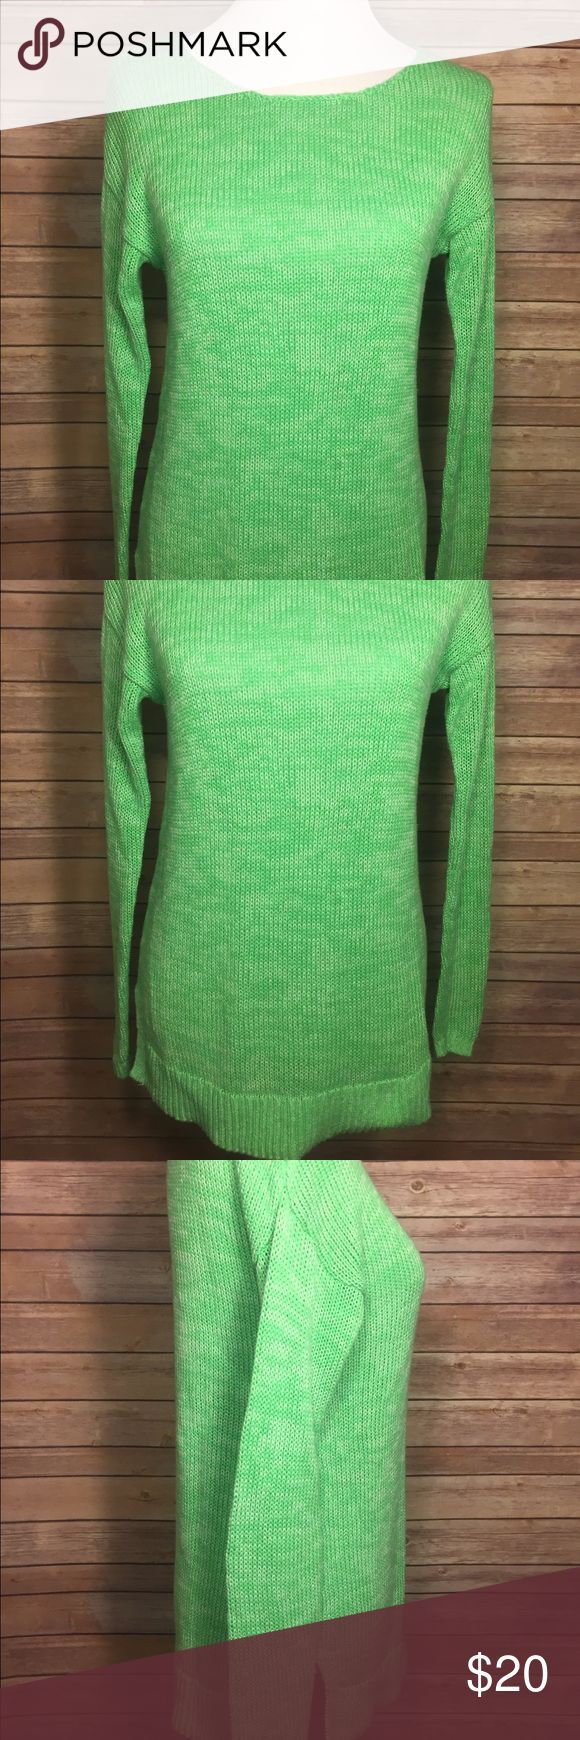 Gap Outlet Green Long Sleeve Cable Knit Sweater Gap Outlet green cable knit long sleeve sweater pullover Size Small (fits like a Medium) GAP Sweaters Crew & Scoop Necks